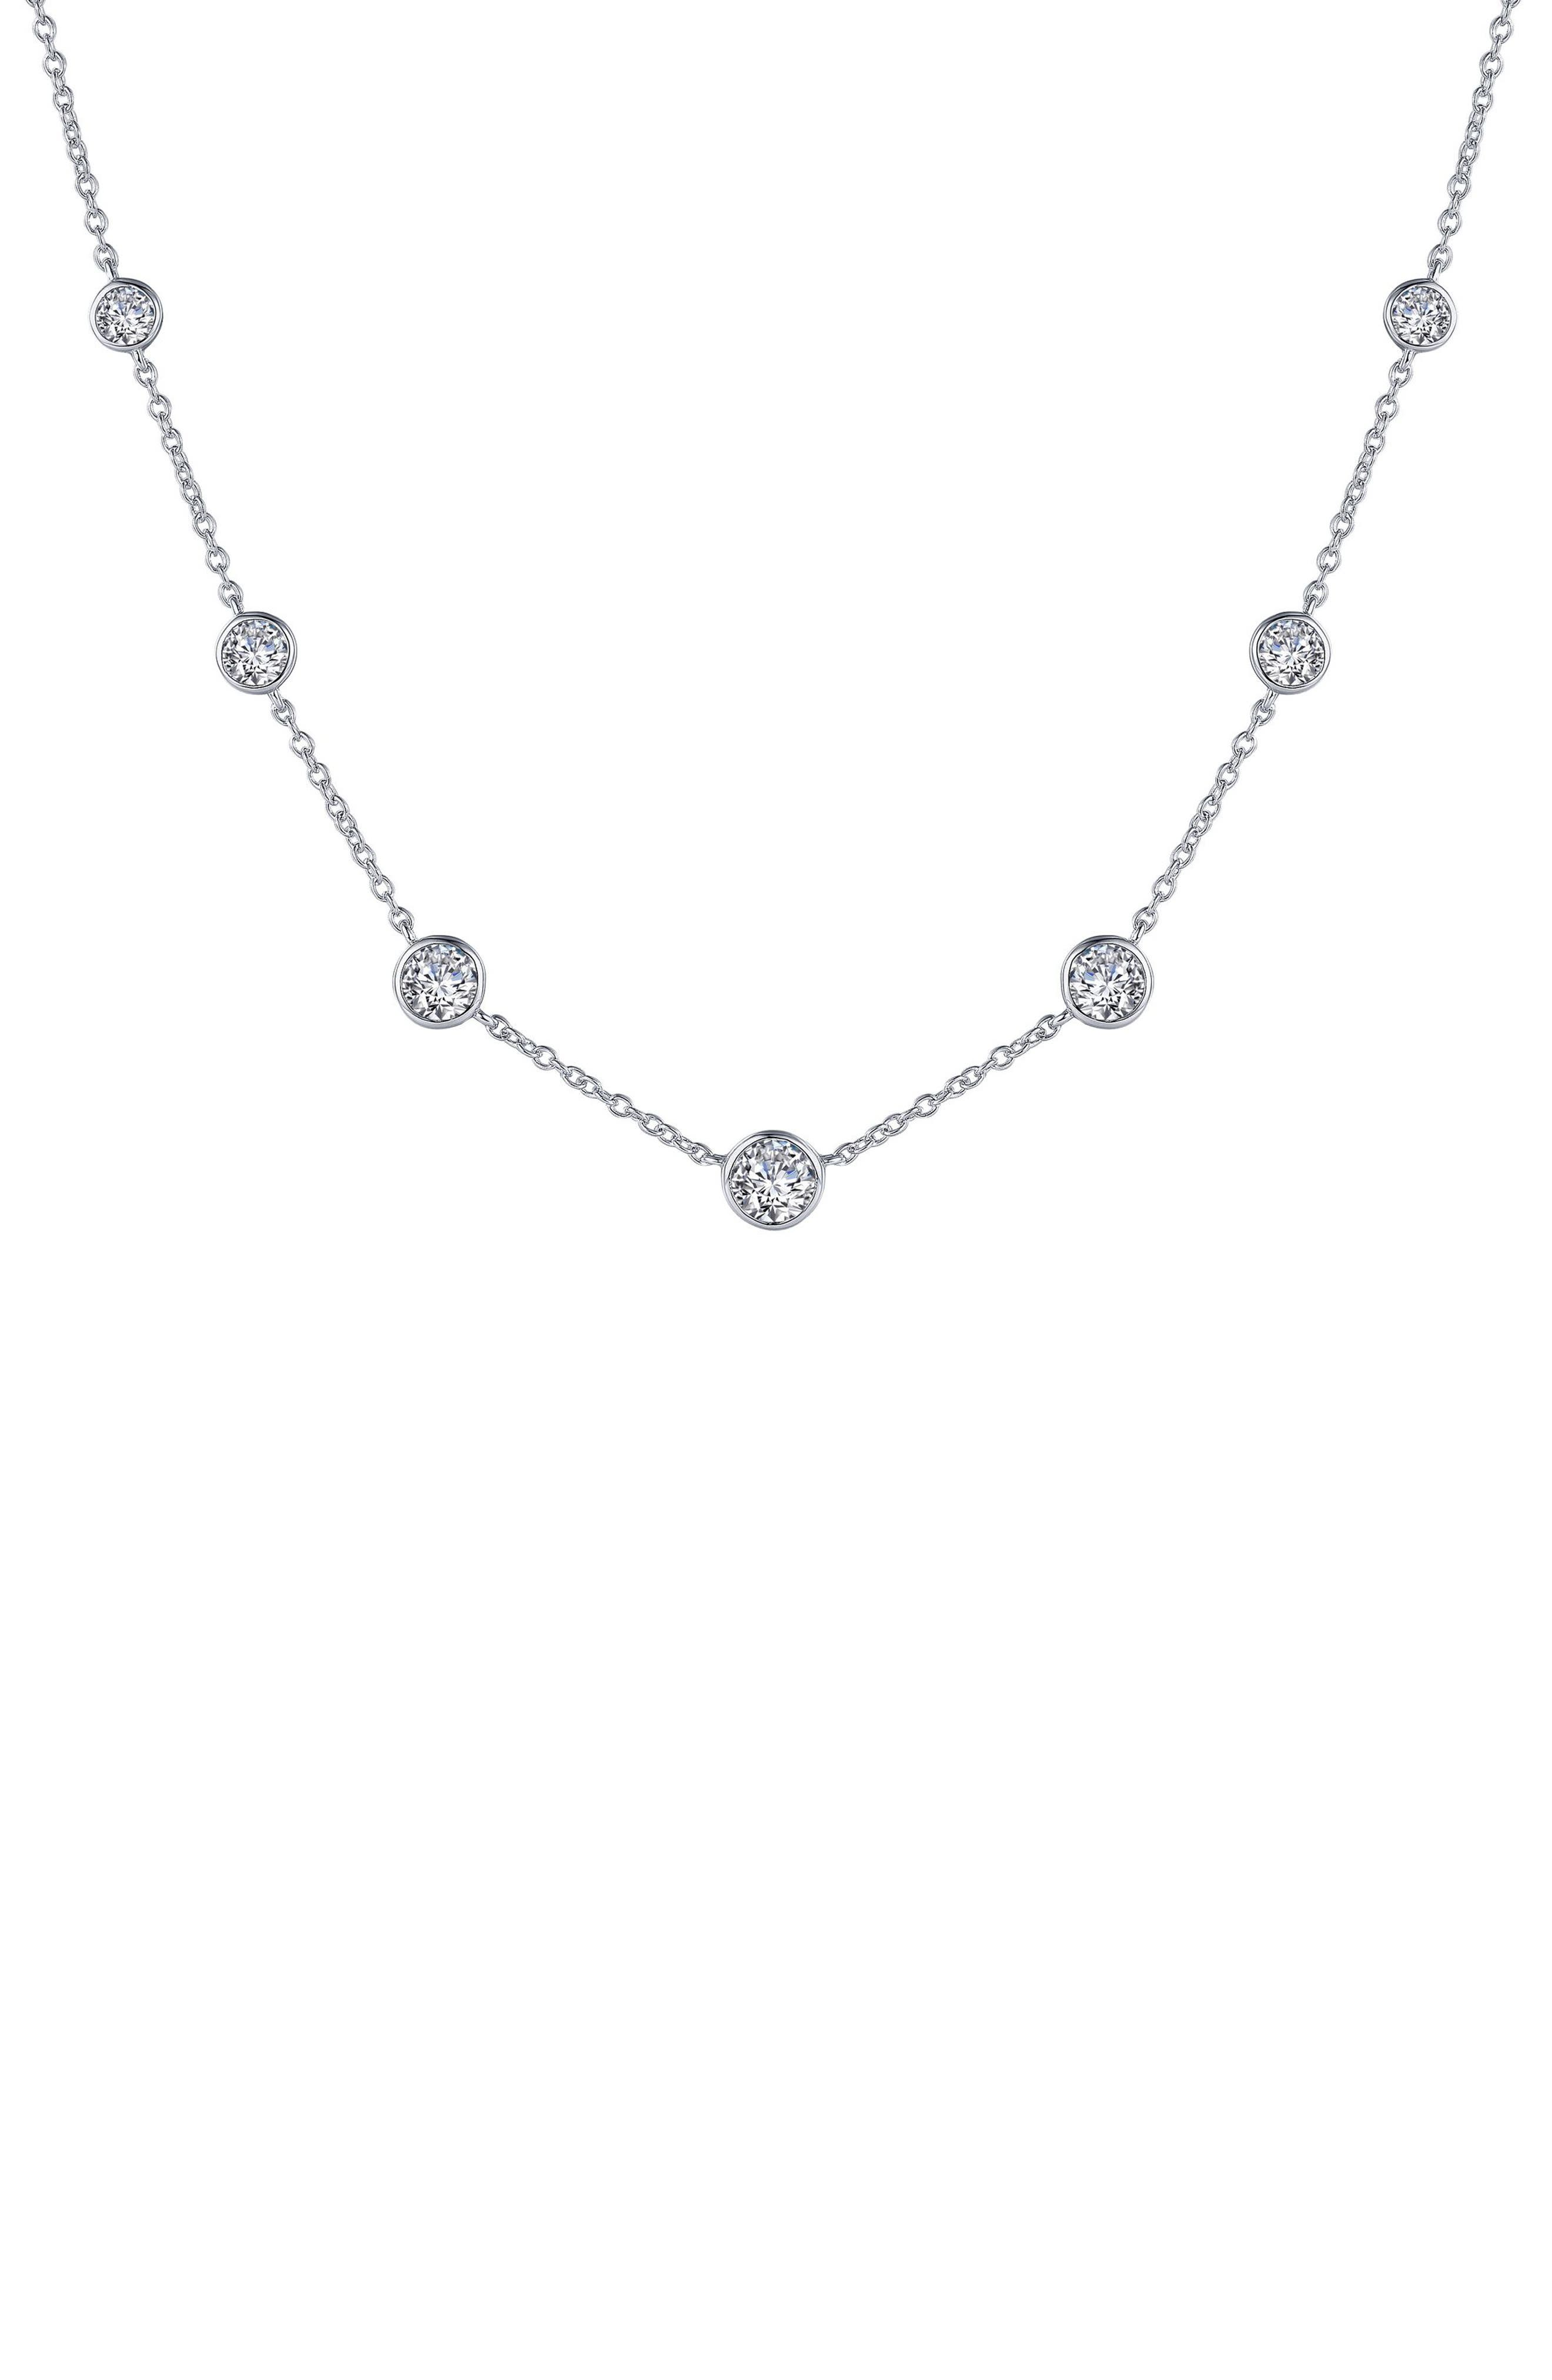 The always lucky number seven is ready to shower gifting good fortune on whomever you gift this simulated-diamond necklace to. Style Name: Lafonn Seven Symbols Of Joy Simulated Diamond Station Necklace. Style Number: 6183251. Available in stores.